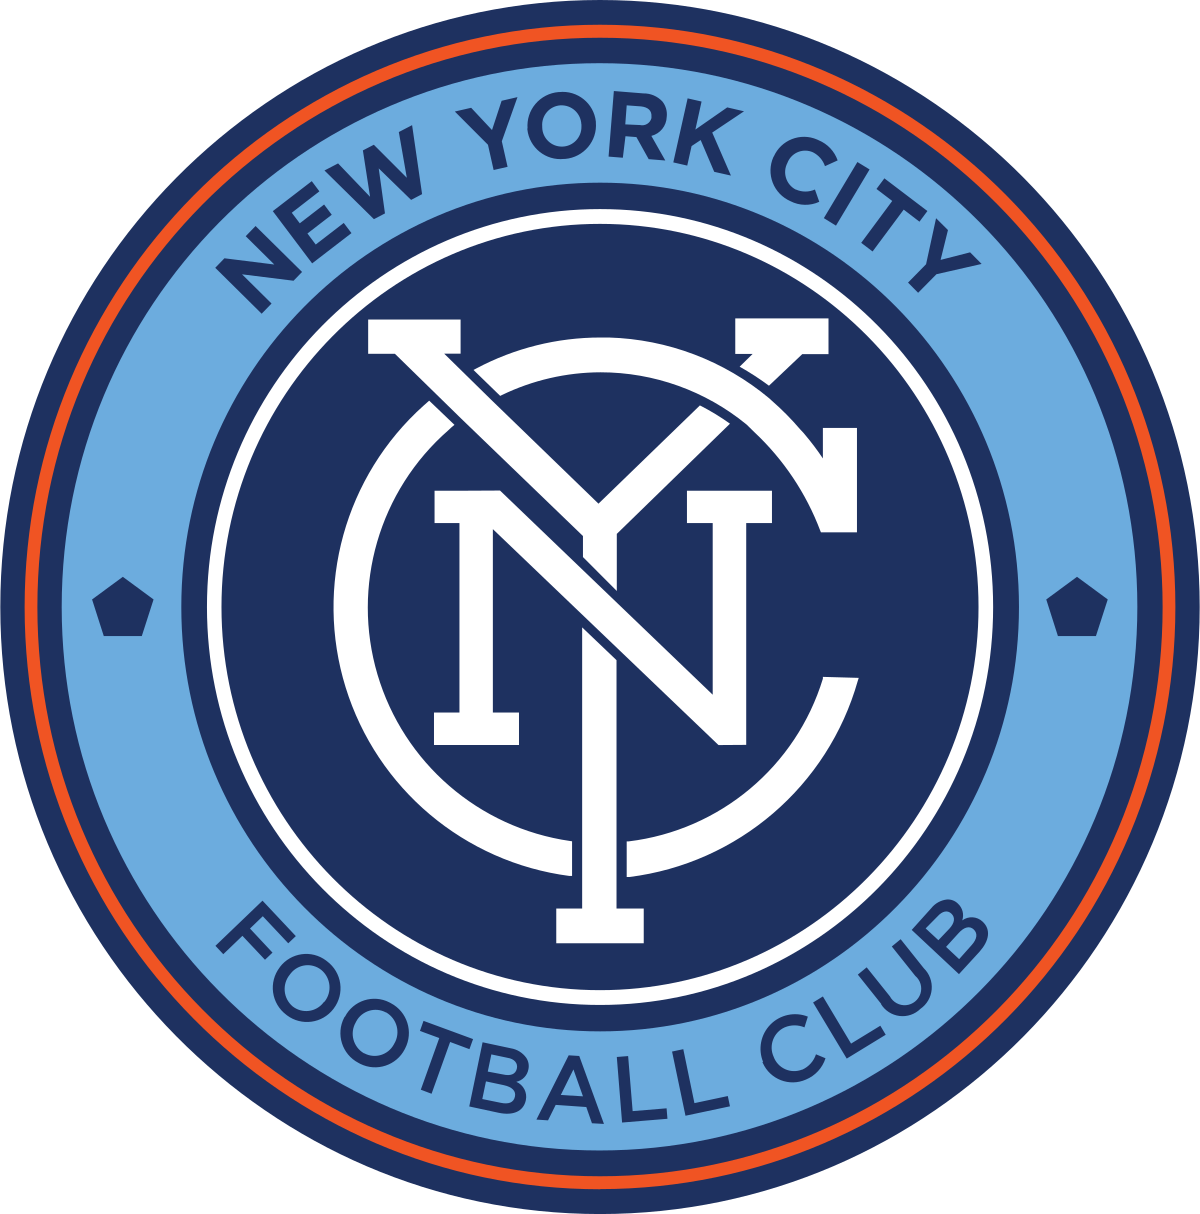 Places New York City FC